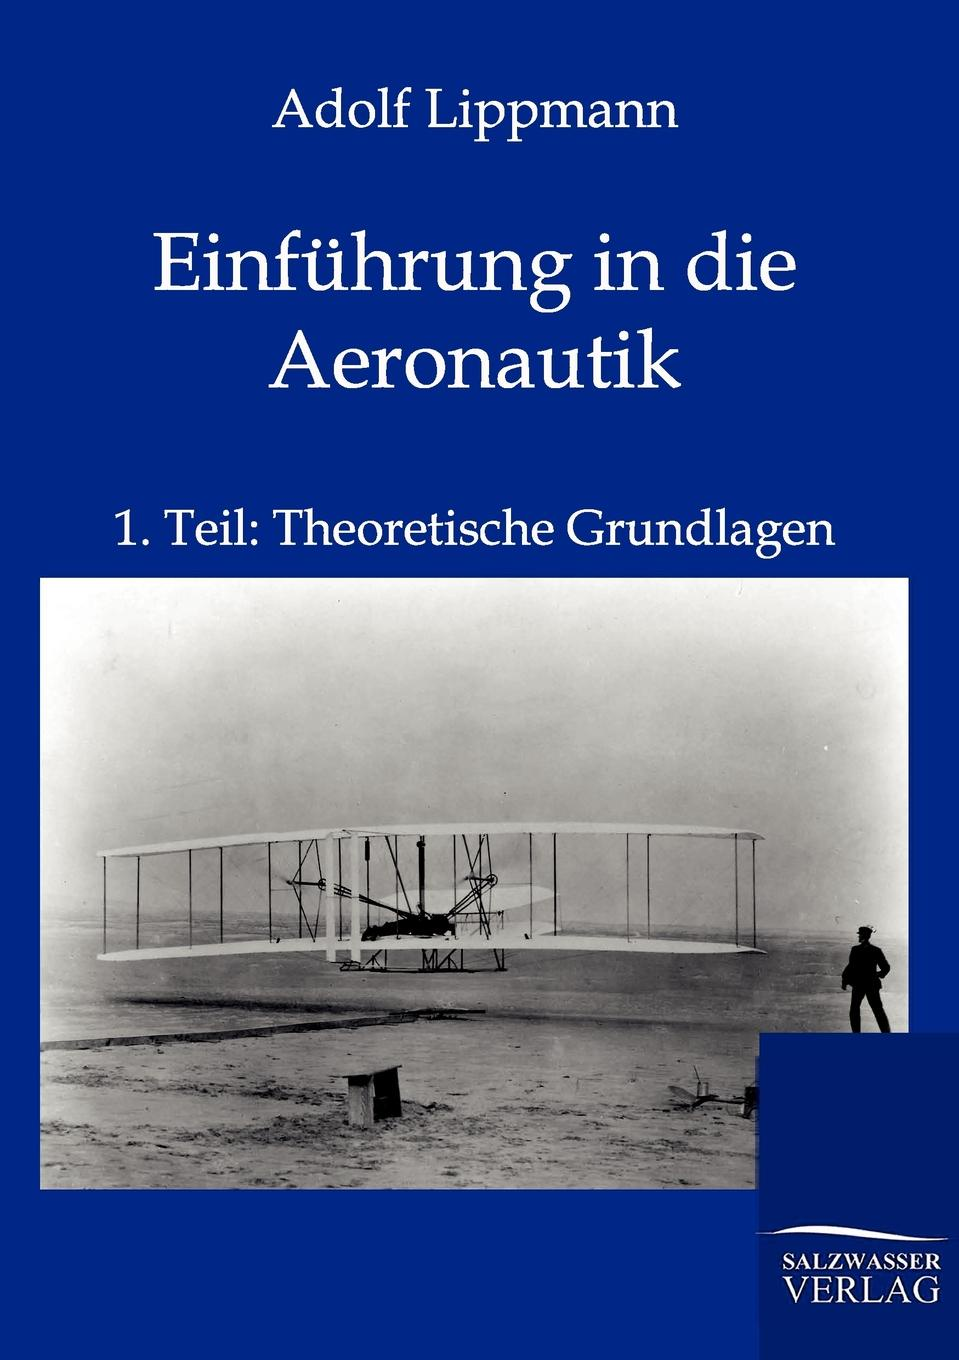 Adolf Lippmann Einfuhrung in die Aeronautik david clive price the age of pluralism global intelligence for emerging leaders